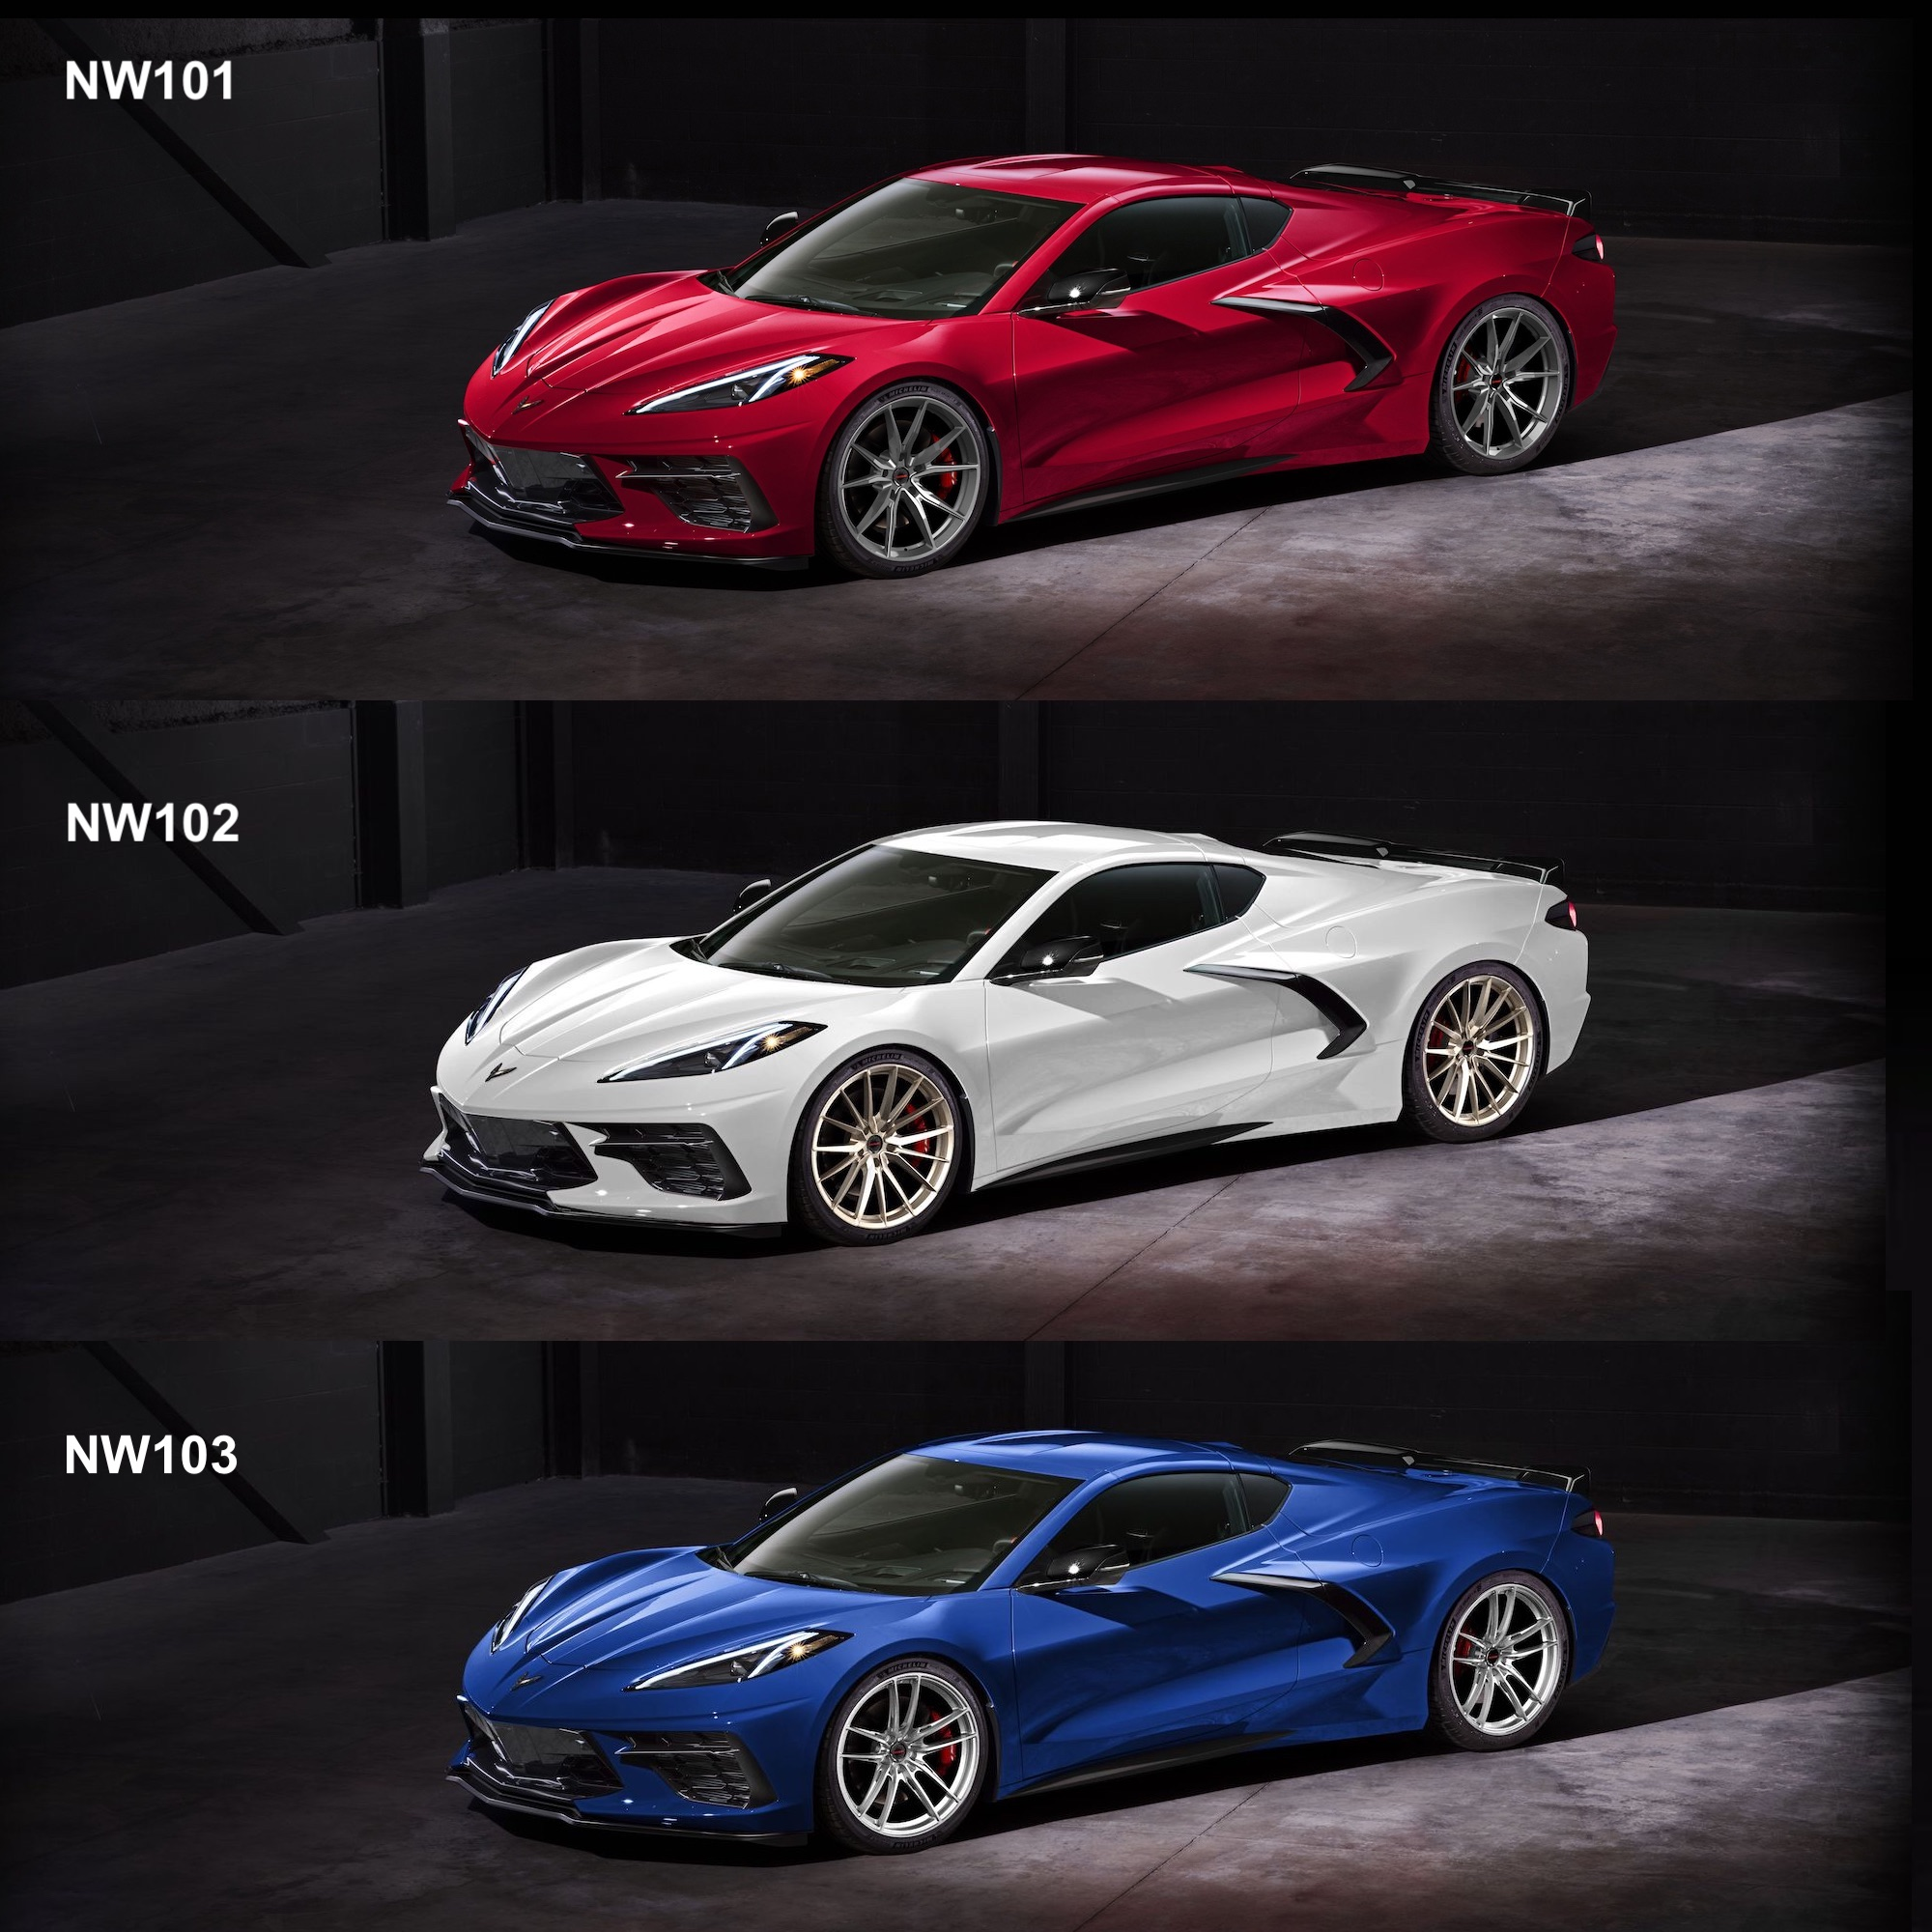 C8 Corvettes on Forgeline NW101, NW102, and NW103 Wheels